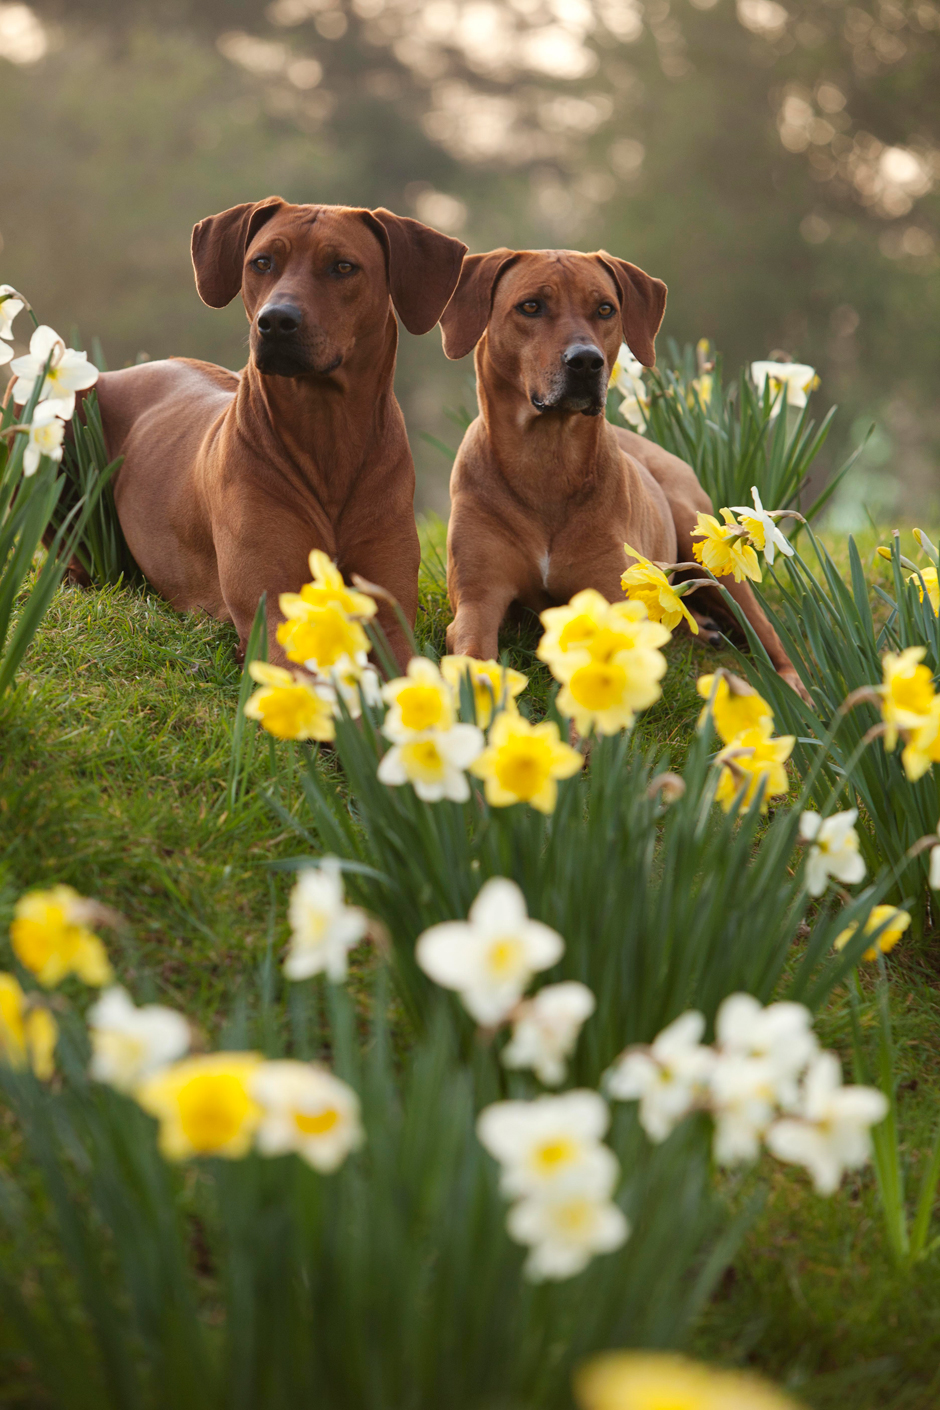 MG 95621 Spring has Sprung as they say...so heres some Rhodesian Ridgebacks & Daffodils